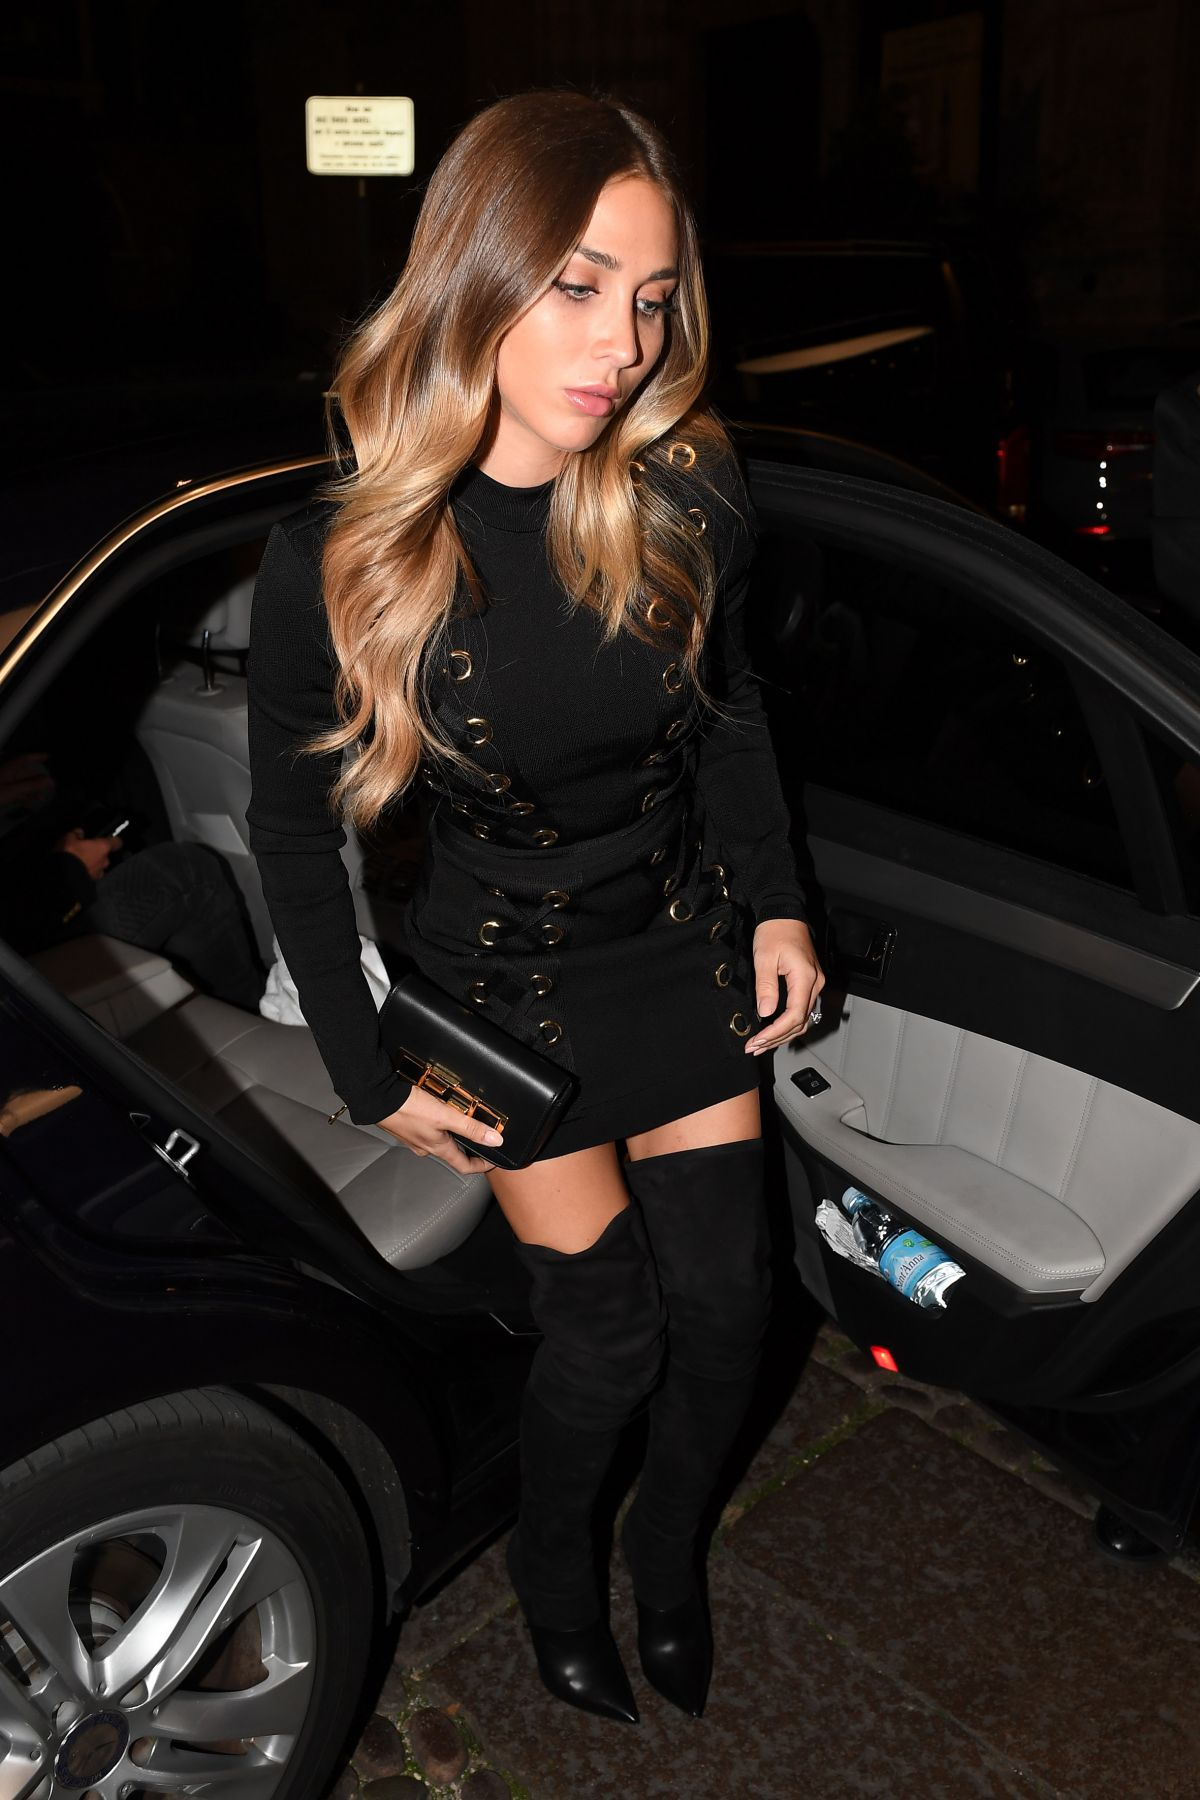 Pictures Ann-Kathrin Brommel nude photos 2019